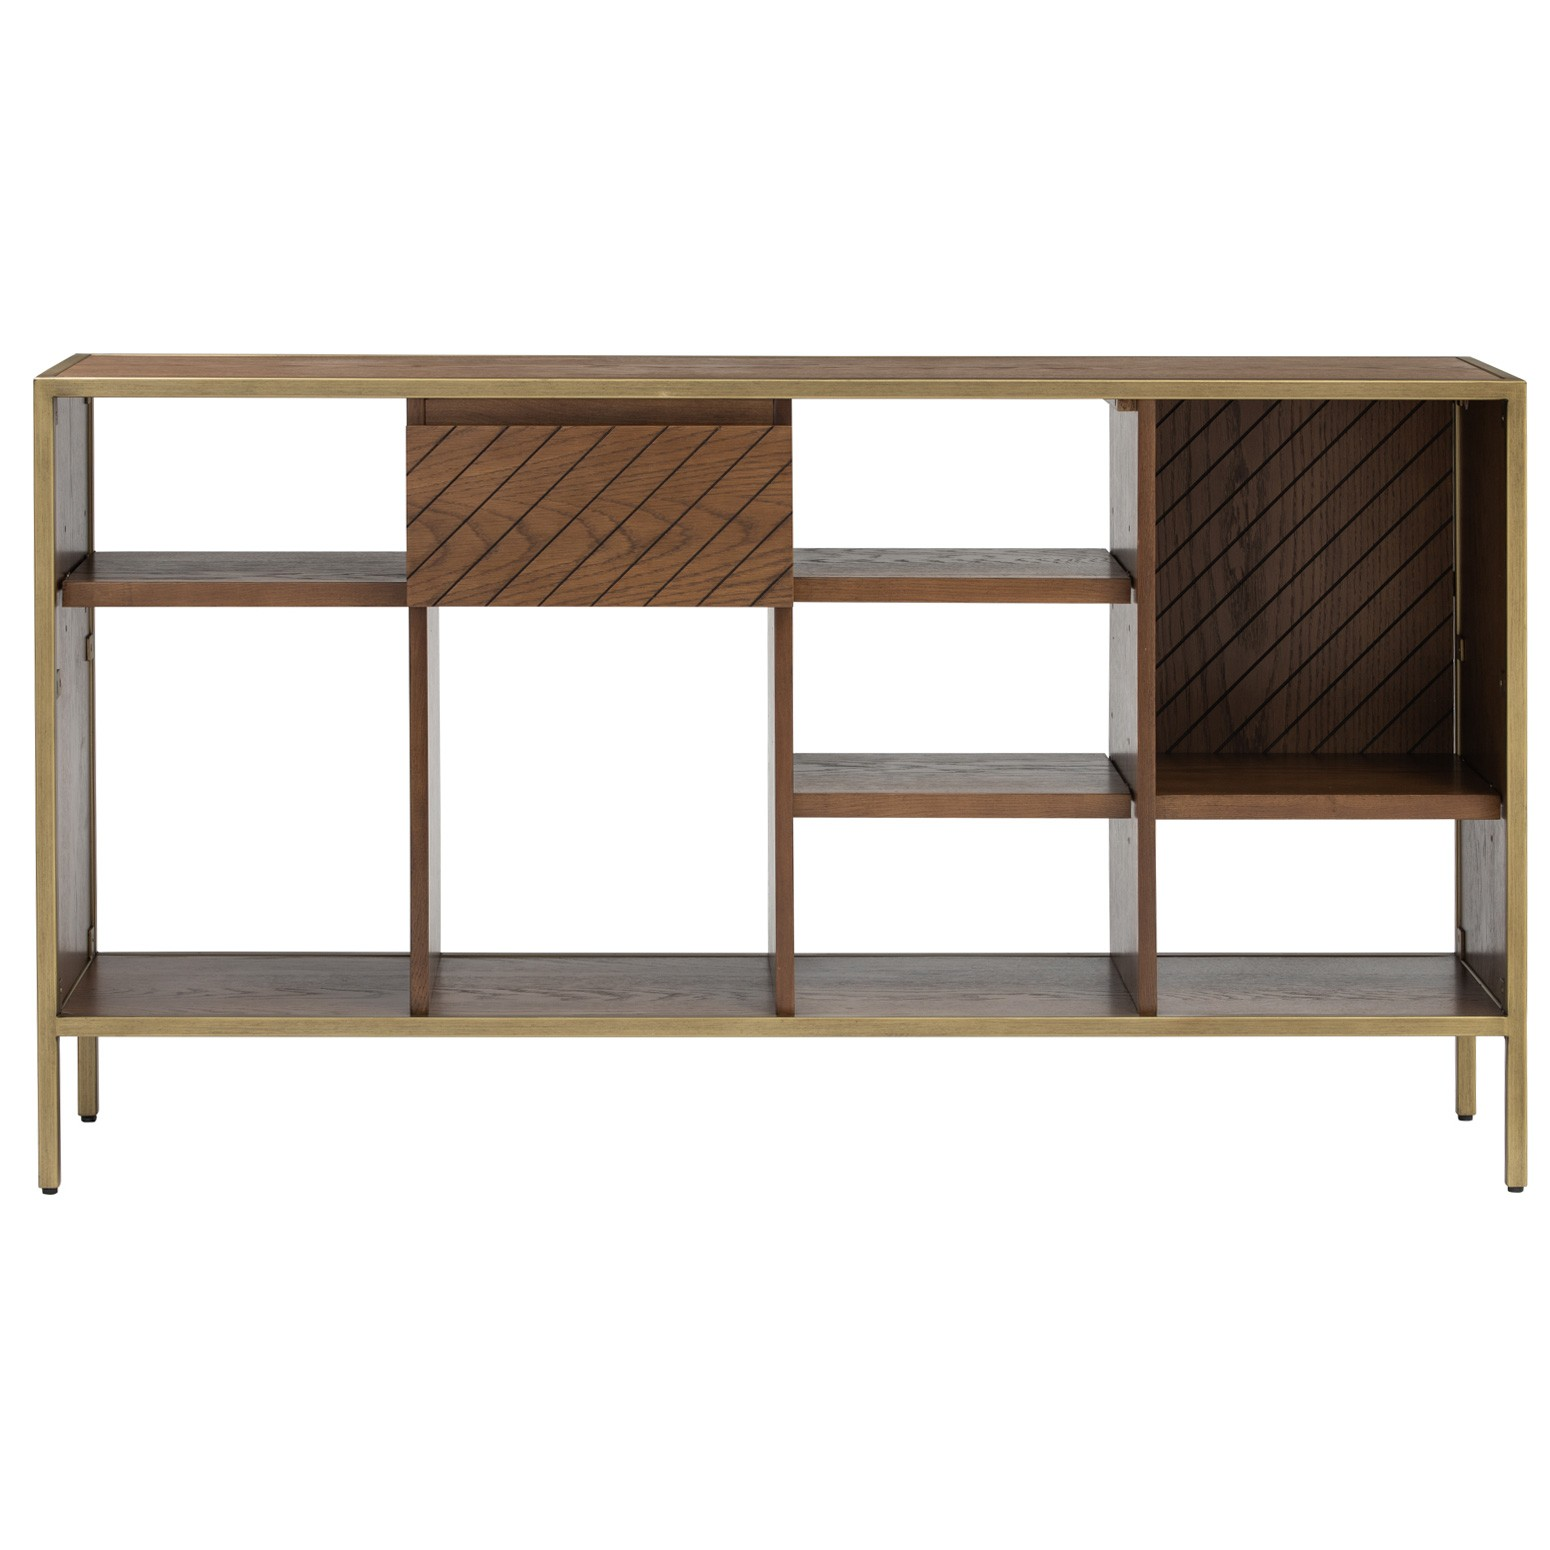 Willingham Wood & Metal Low Bookcase / Display Shelf